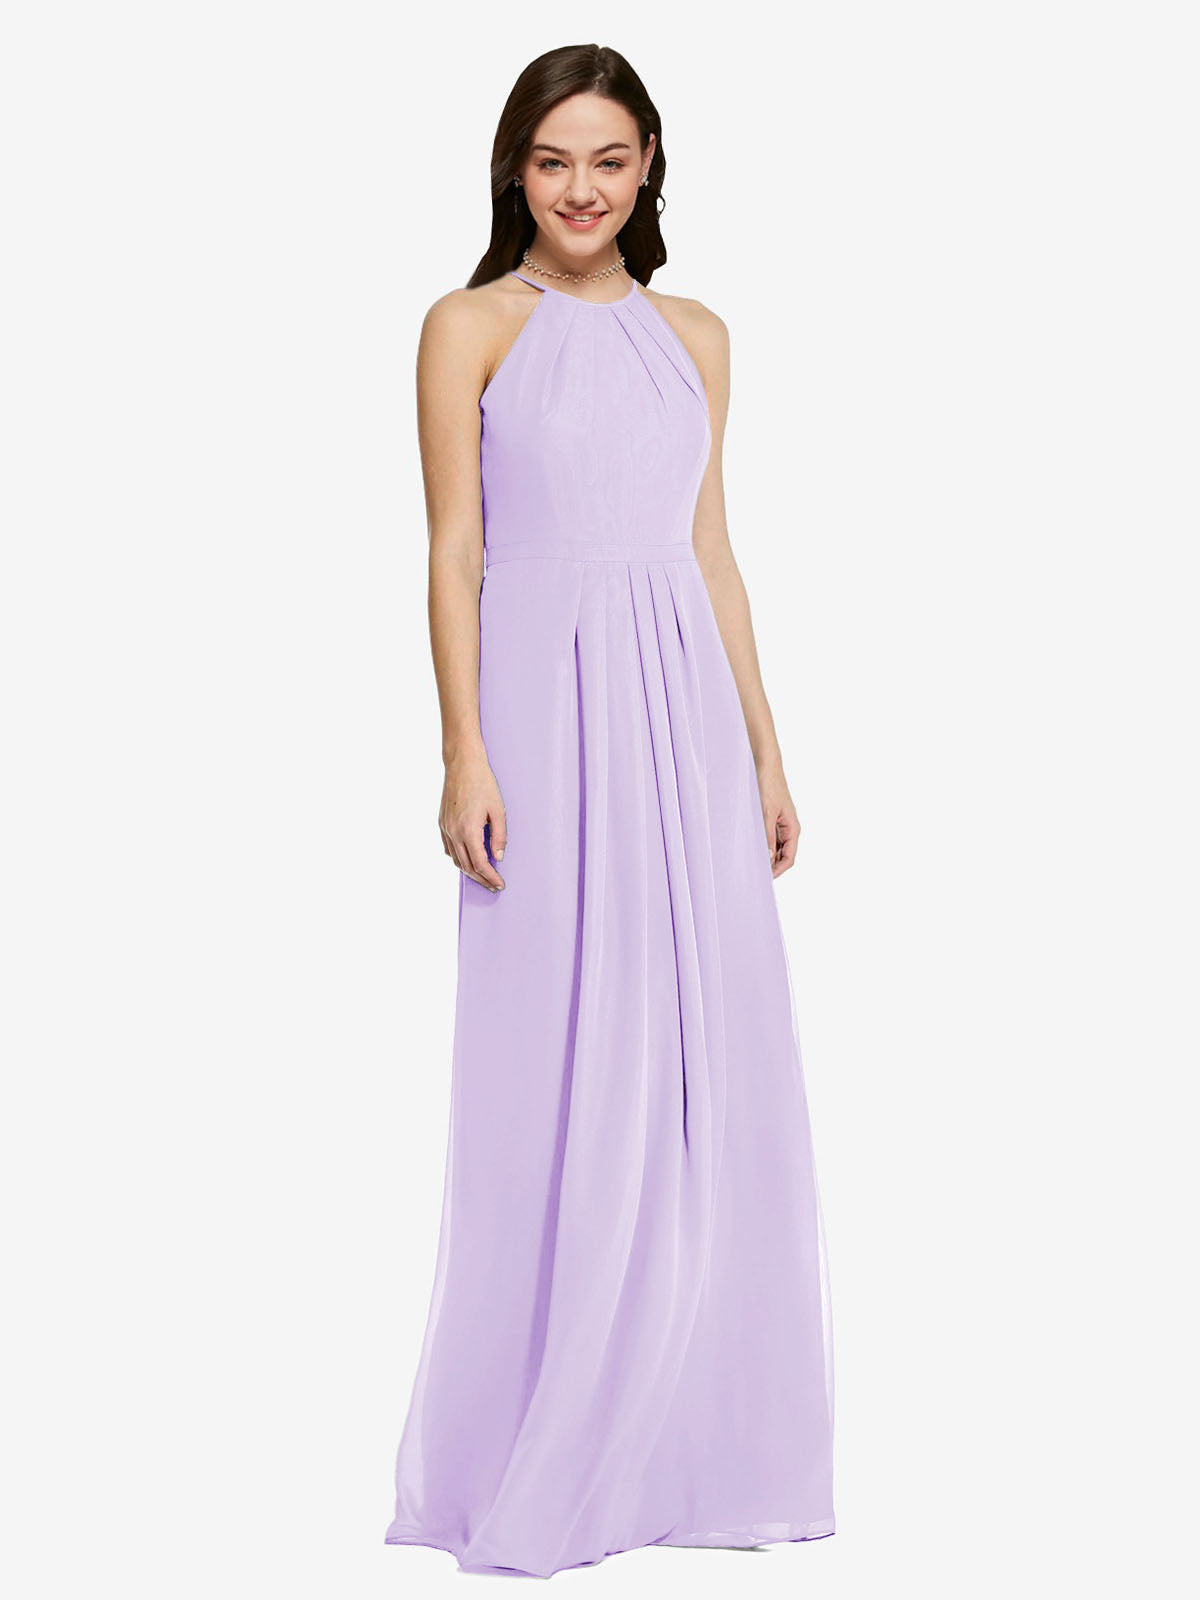 Long Sheath High Neck Halter Sleeveless Lilac Chiffon Bridesmaid Dress Koloti